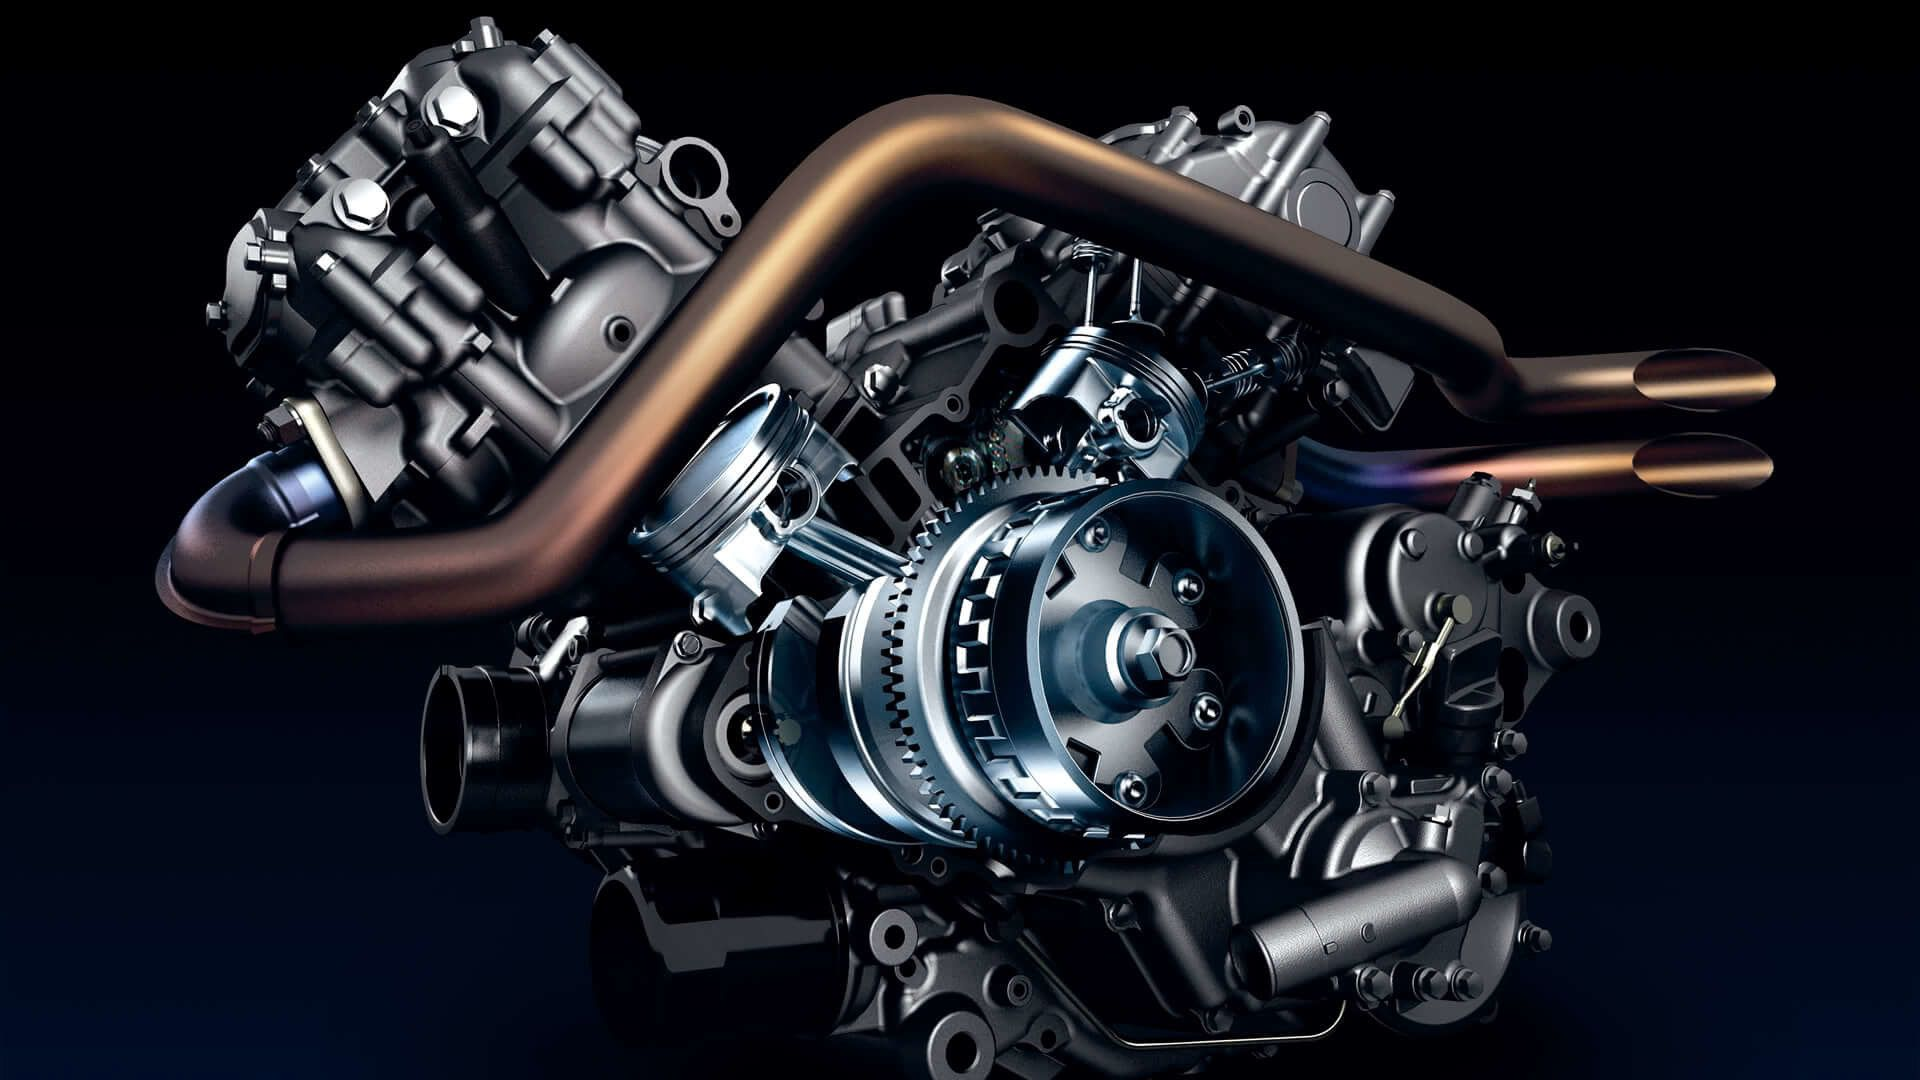 1920x1080 The Mechanic Wallpapers Hd Download Automobile Engineering Car Engine Engineering